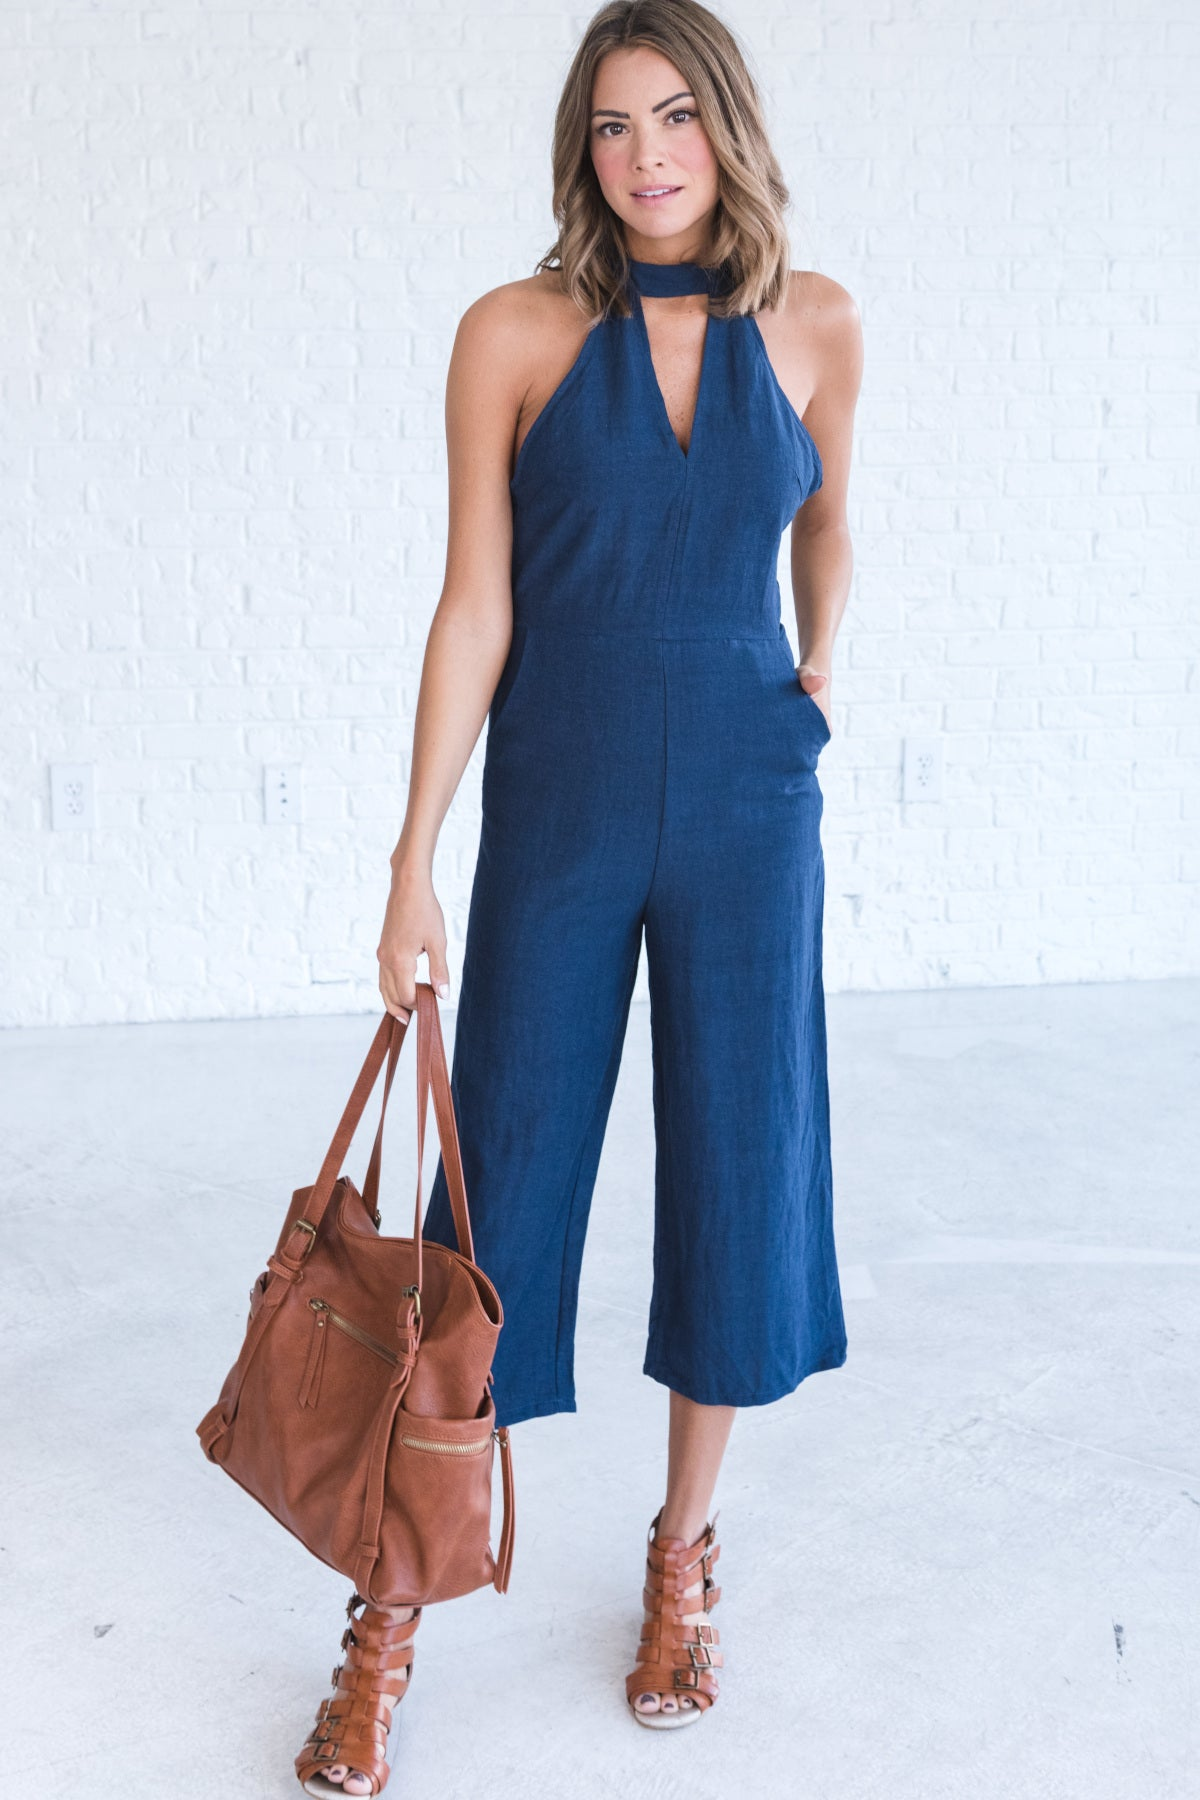 Denim Blue Dressy Jumpsuits for Women